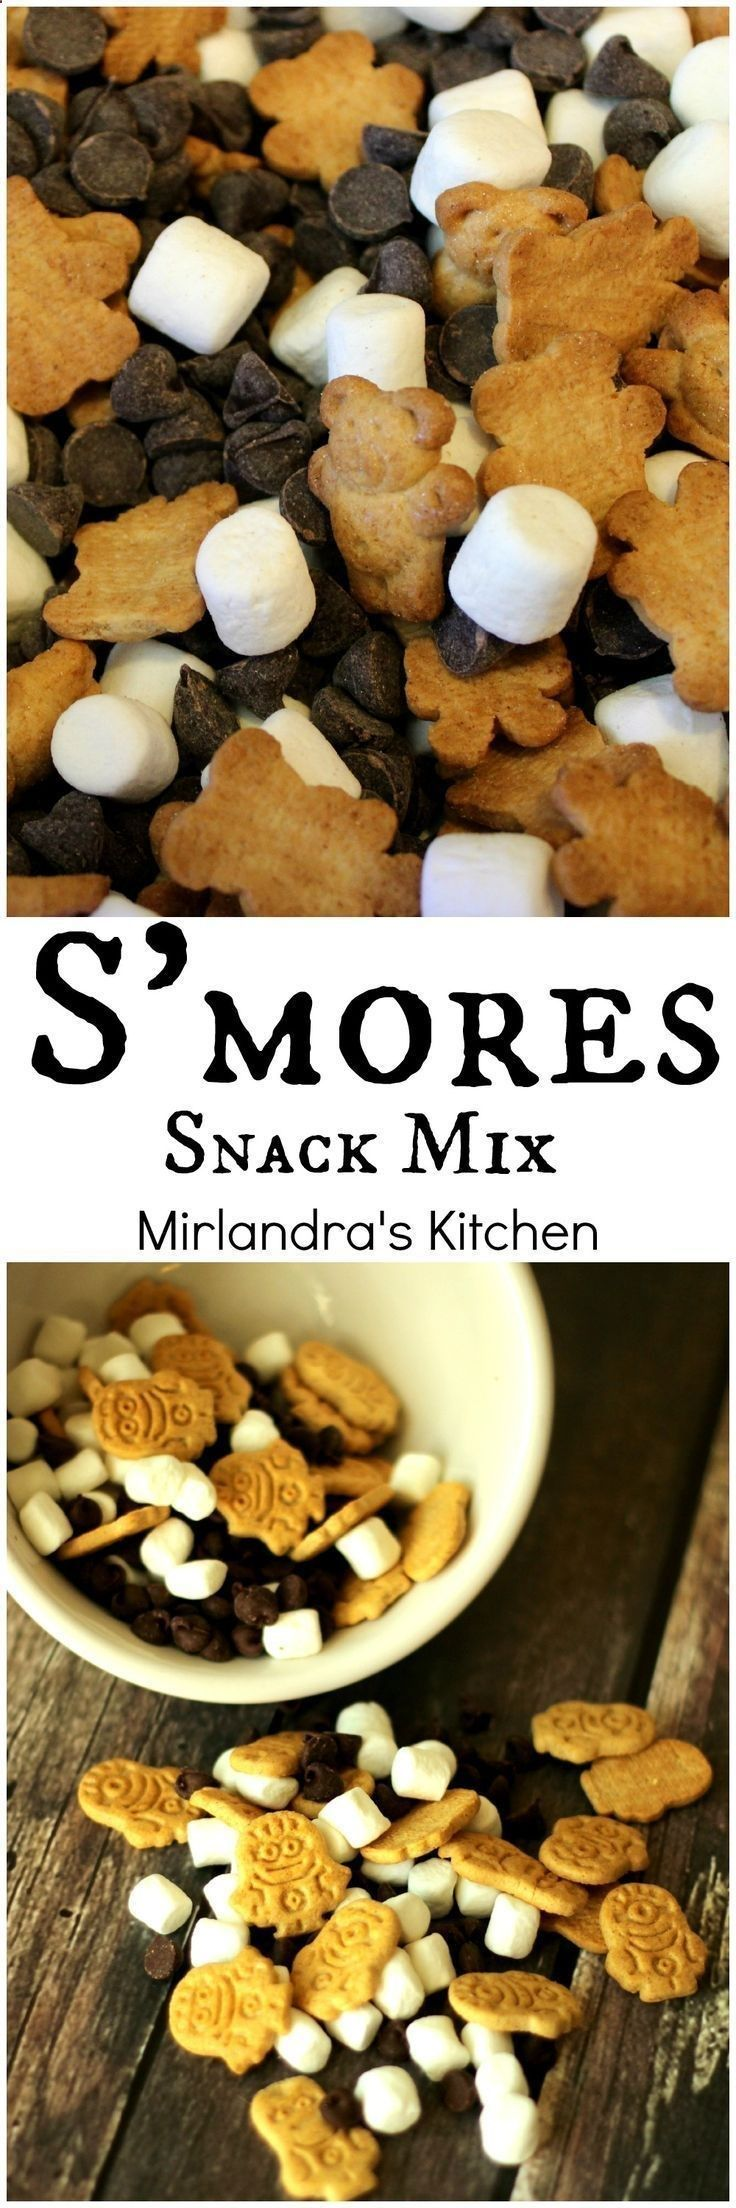 Fun and playful, this Smores Snack Mix is the perfect treat for a party, camping or snacking. You can make it with Teddy Grahams or the new Minions Grahams